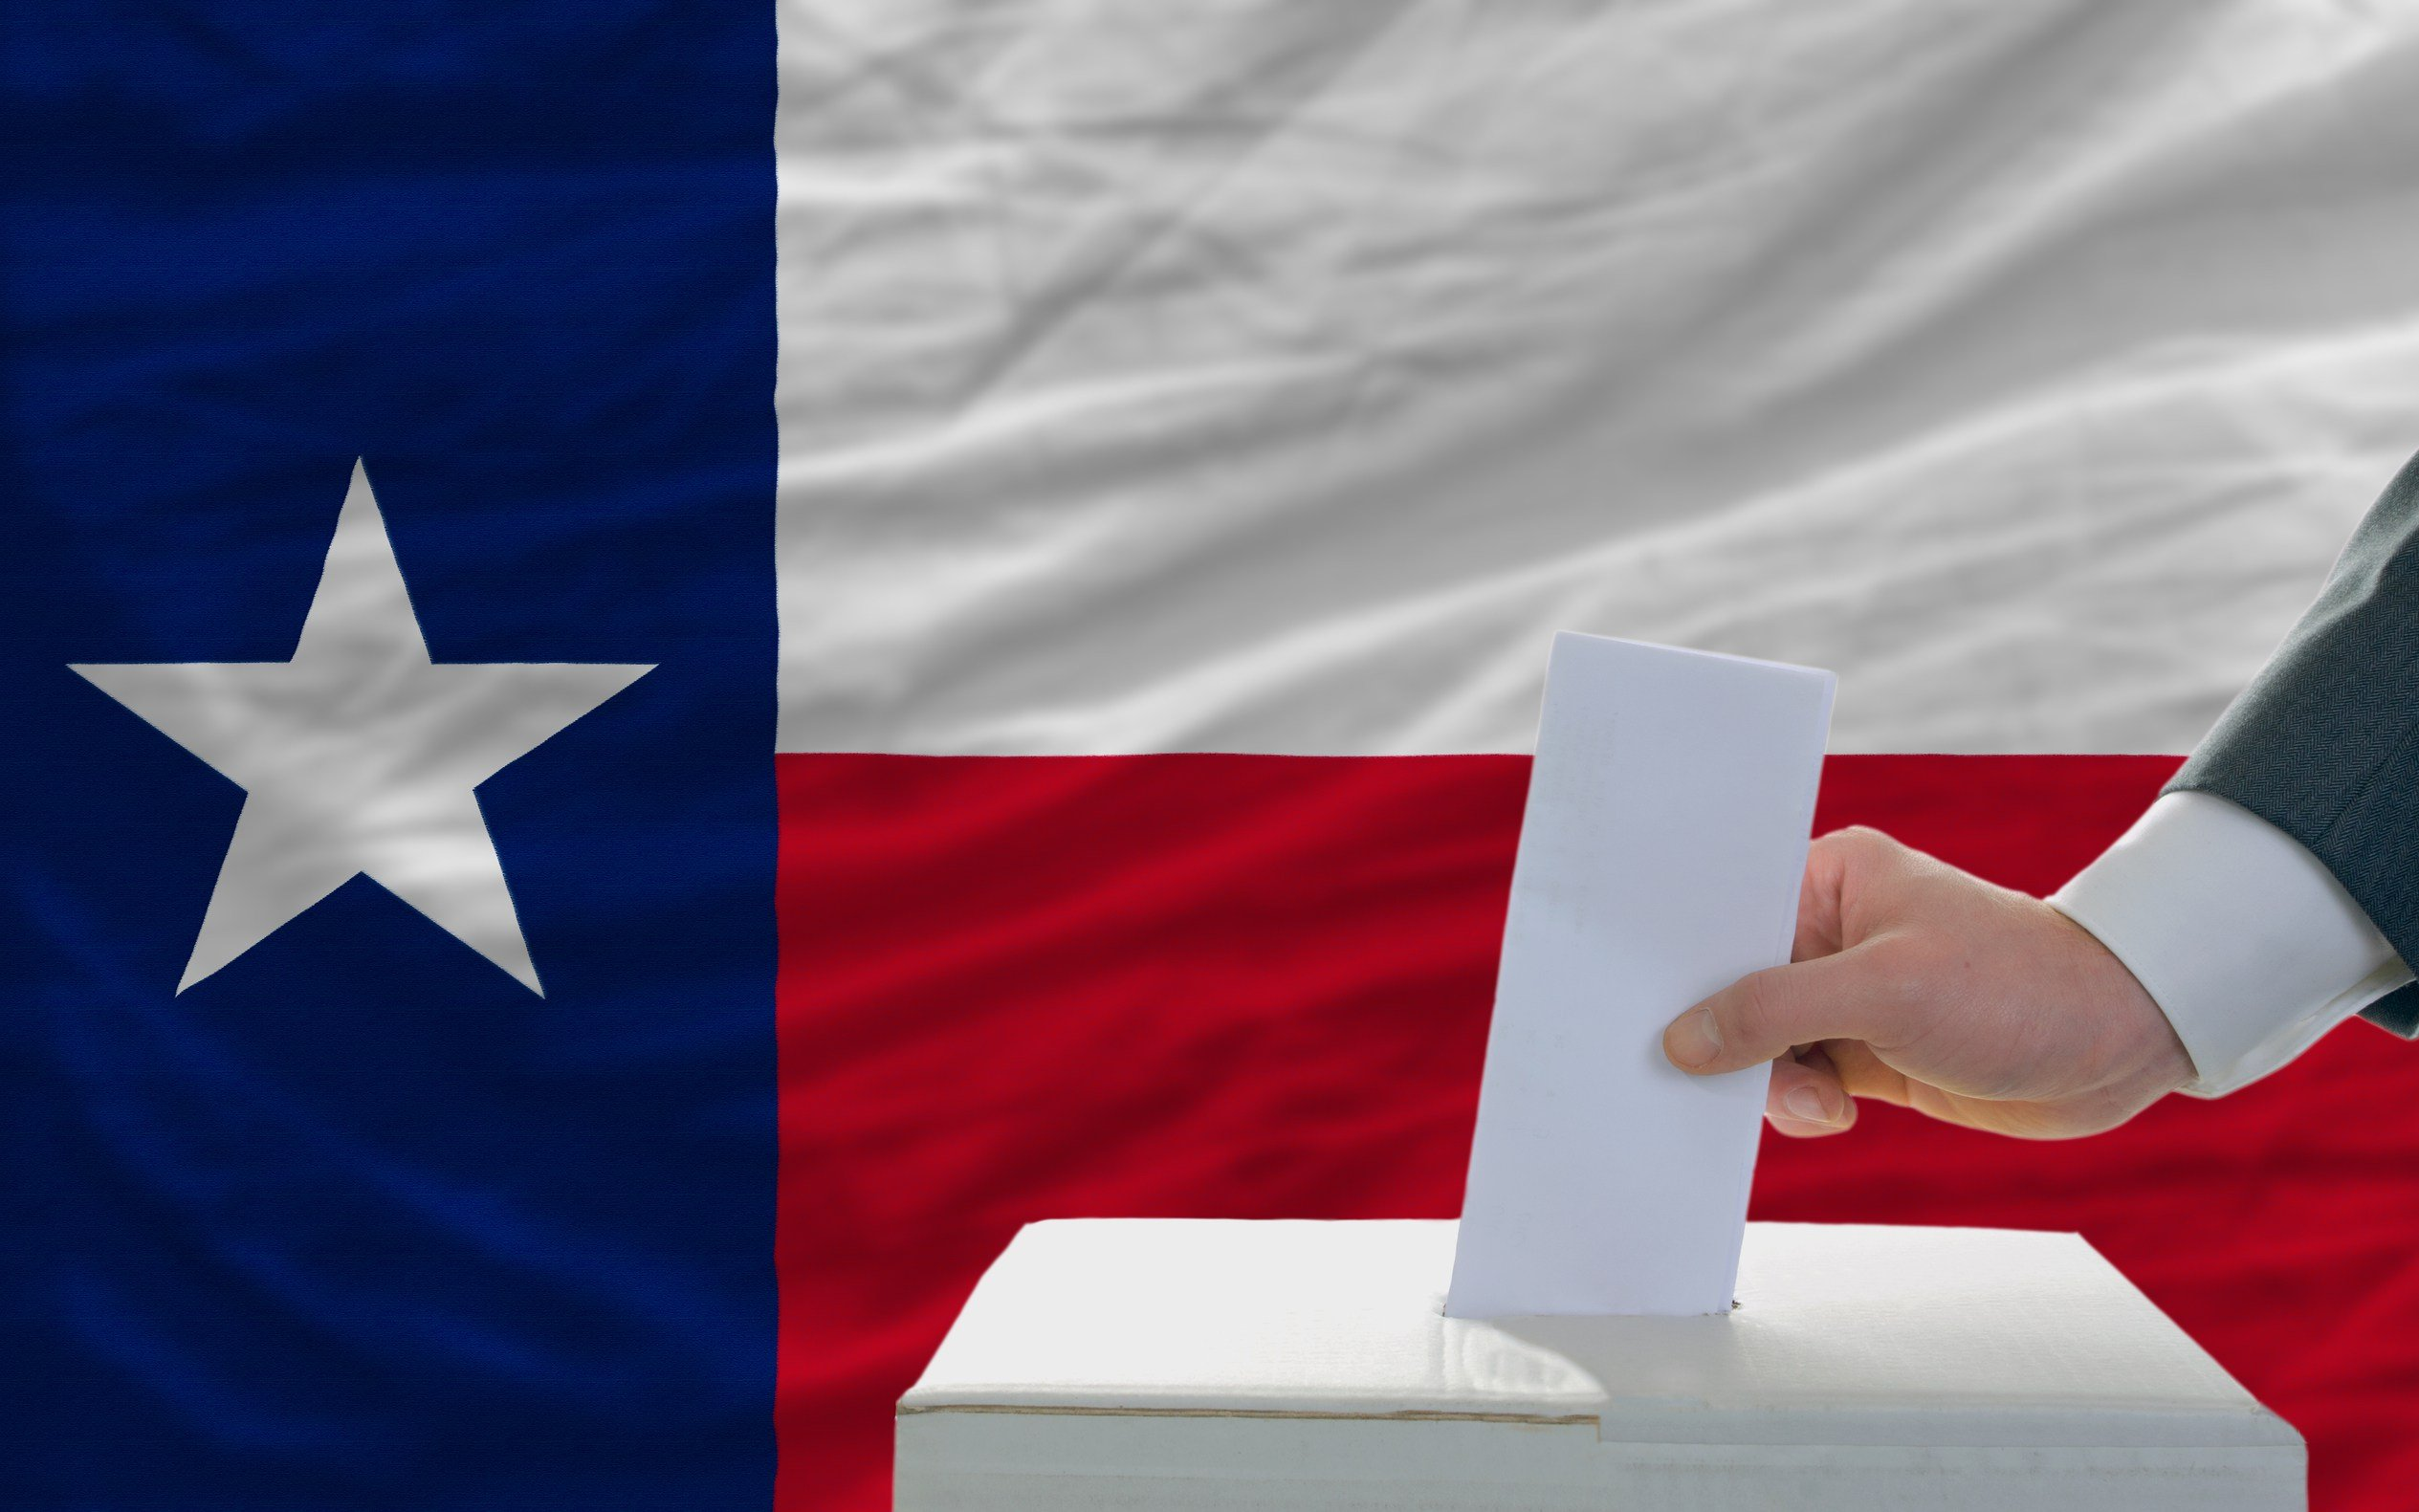 Lawsuit Largest Texas County Withholding Noncitizen Voting Records